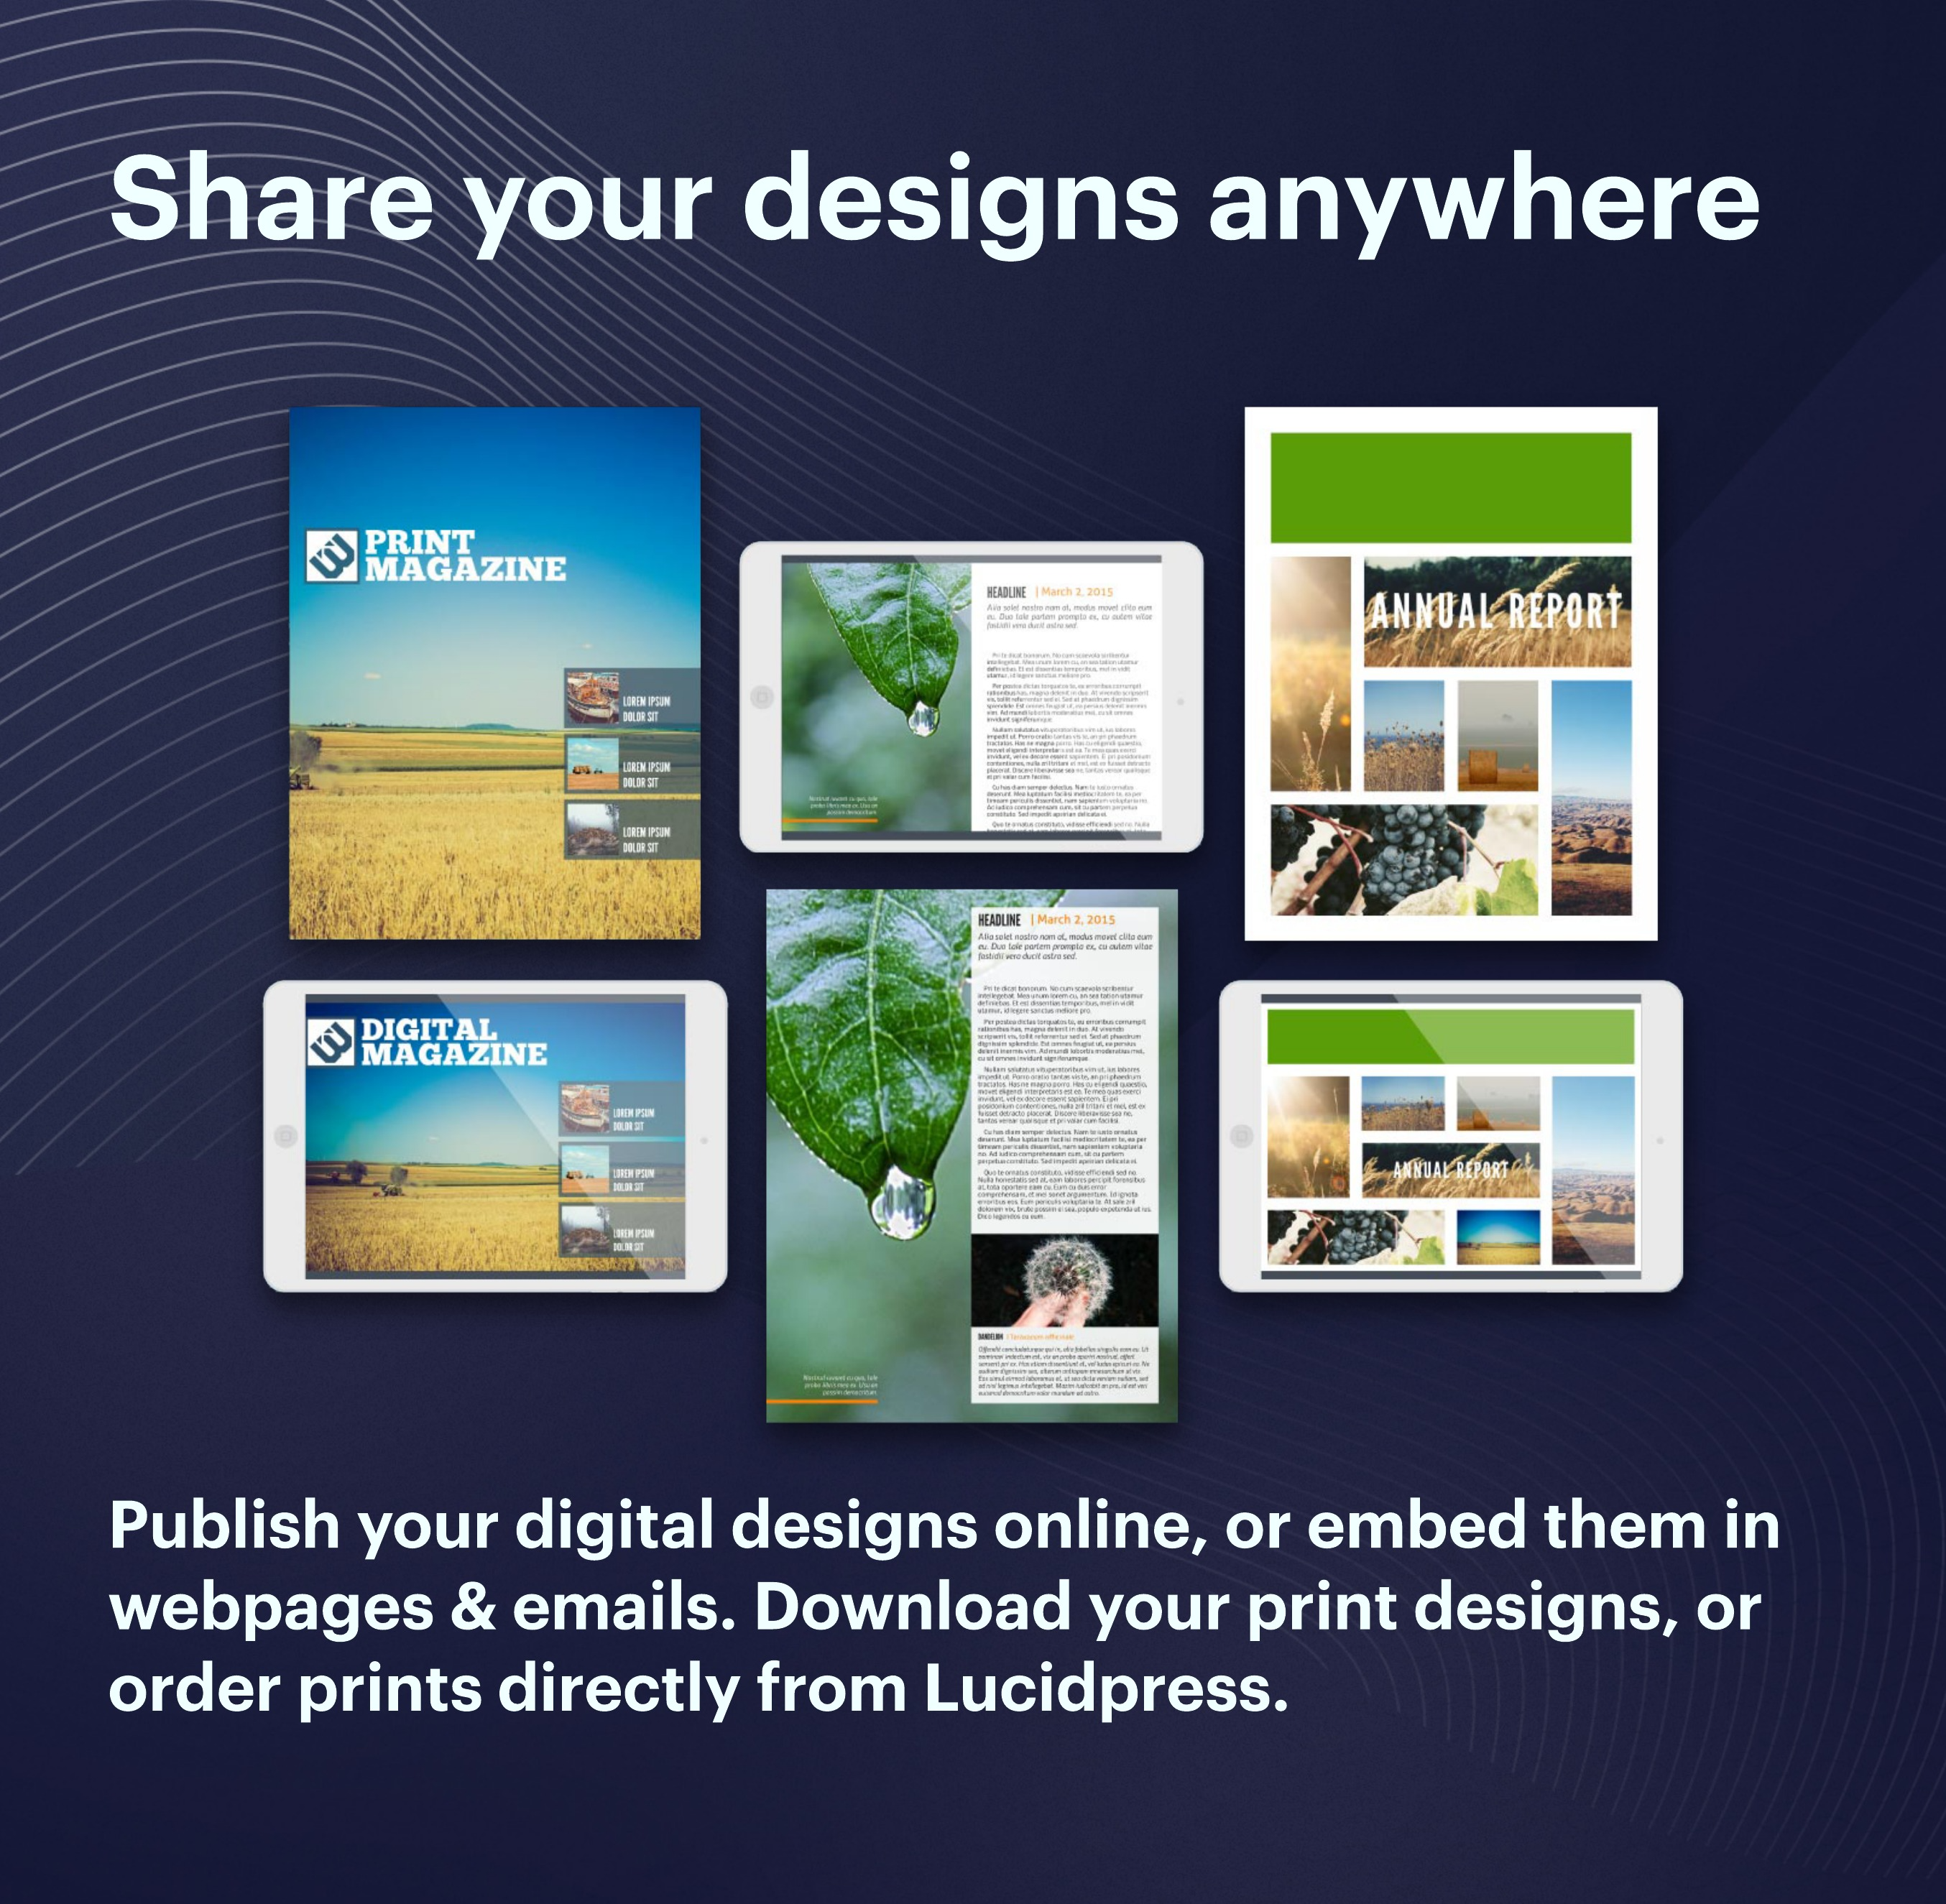 Publish your digital designs online, or embed the in webpages & emails. Download your print designs, or order prints directly from Lucidpress.